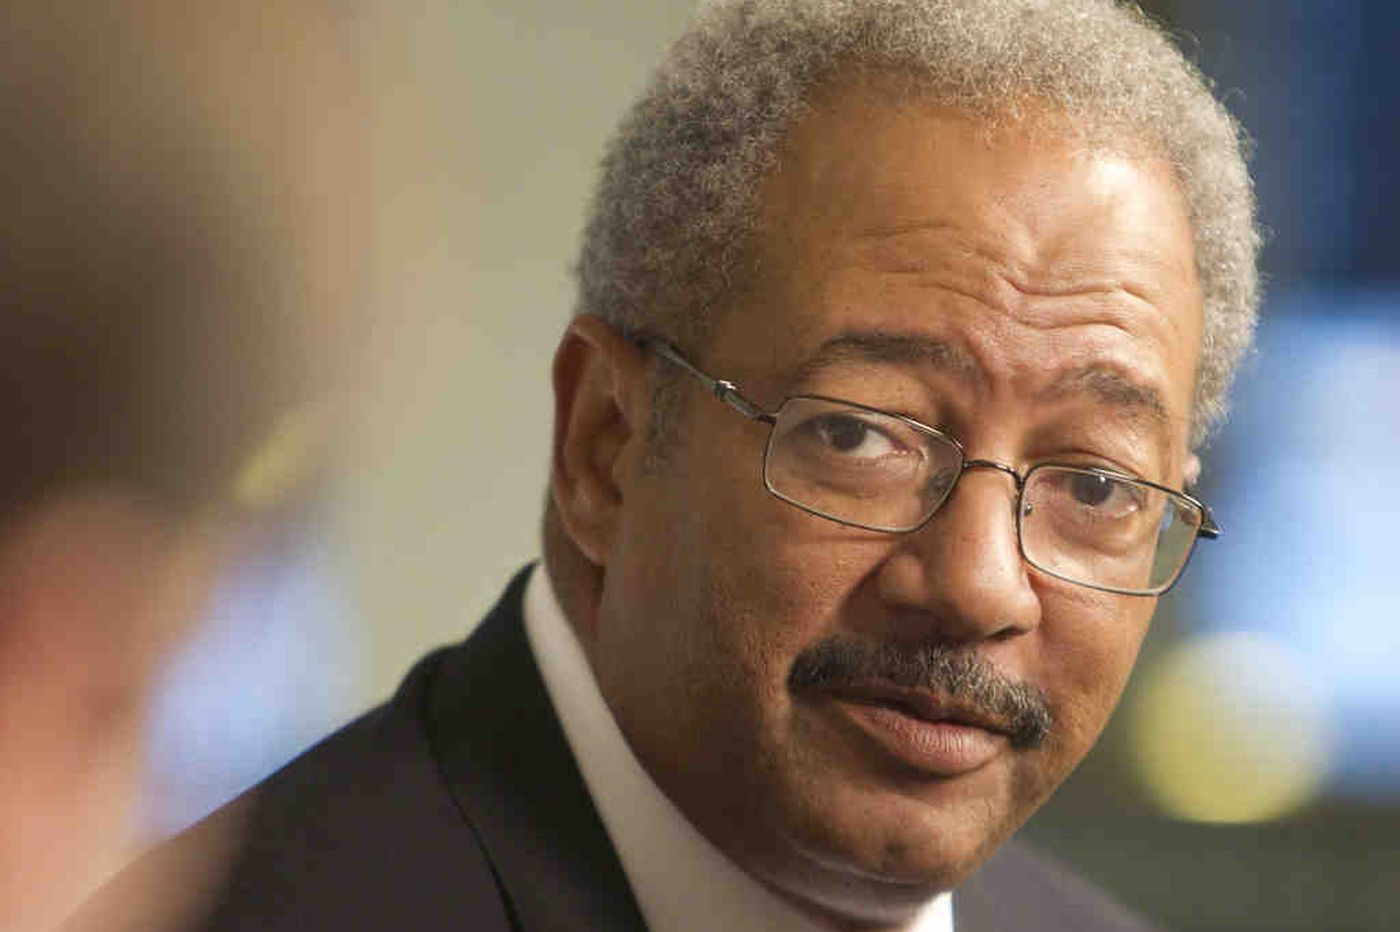 Former aide's guilty plea raises questions for U.S. Rep. Chaka Fattah